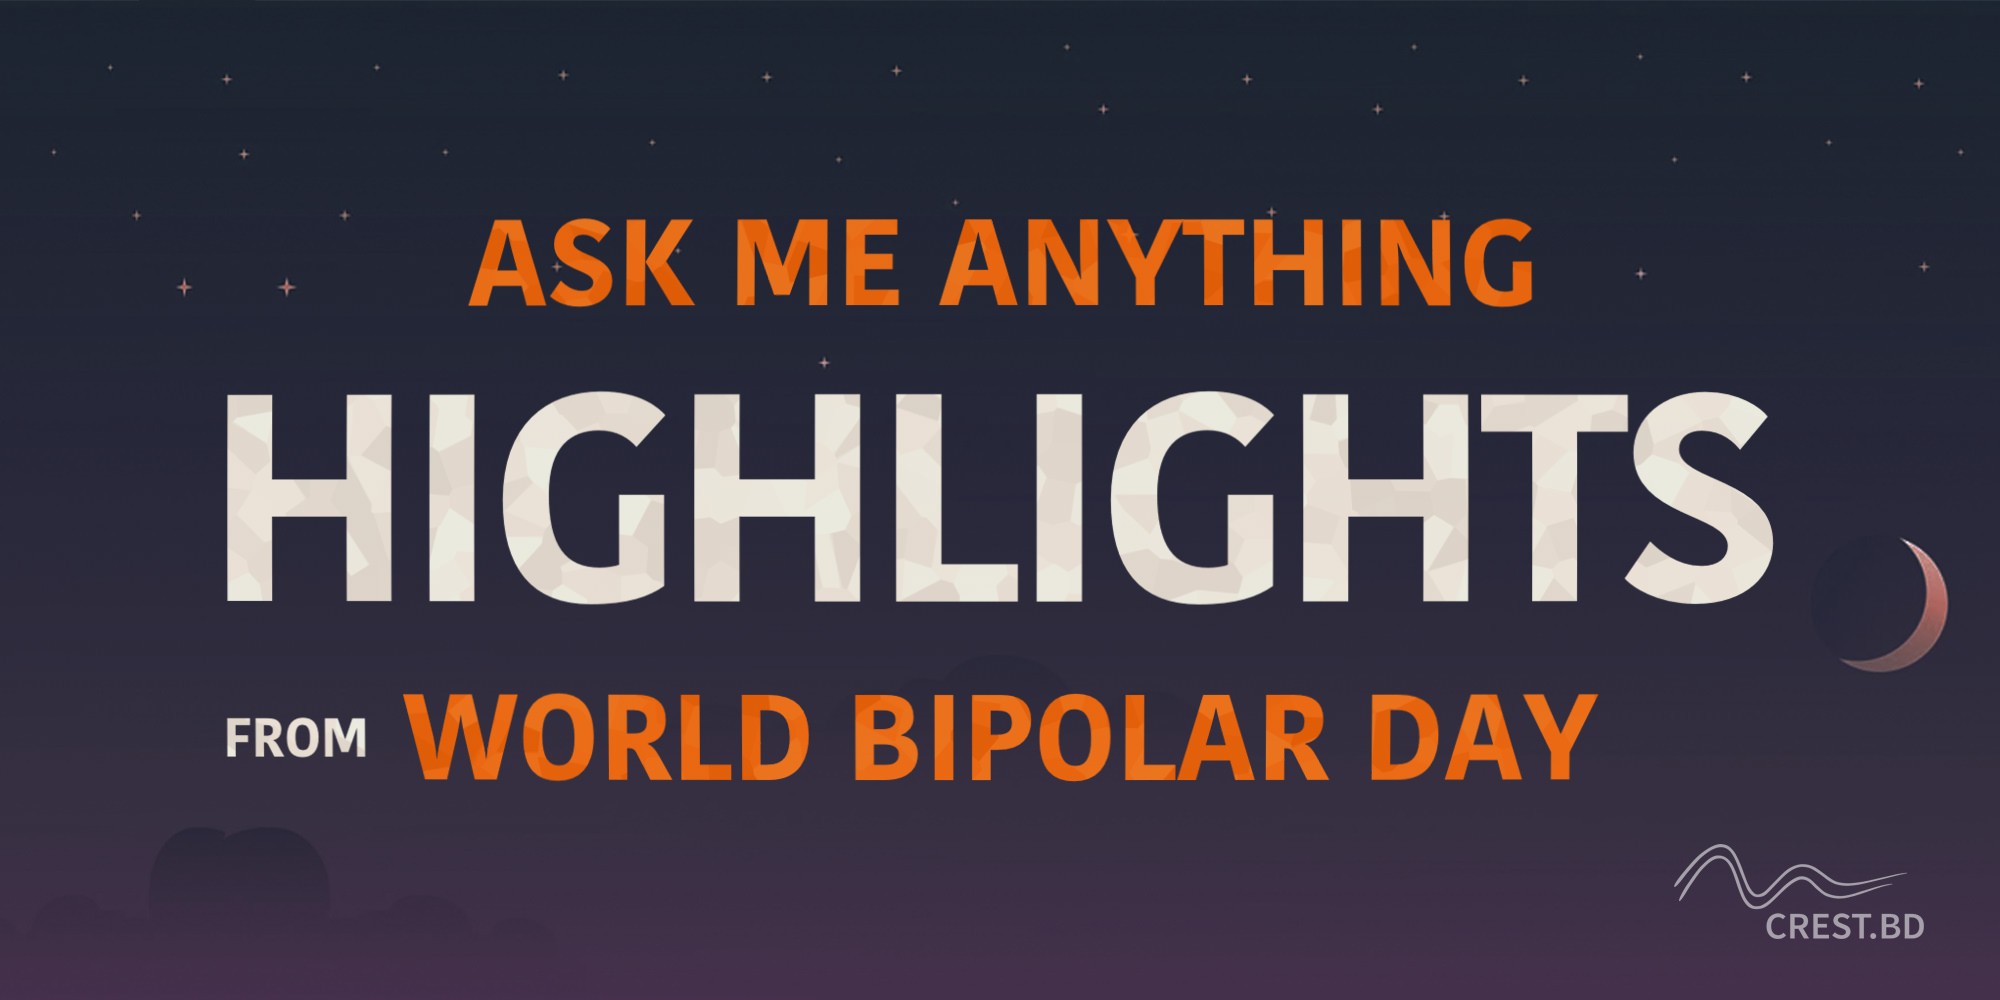 Highlights from our World Bipolar Day 2021 AMA!